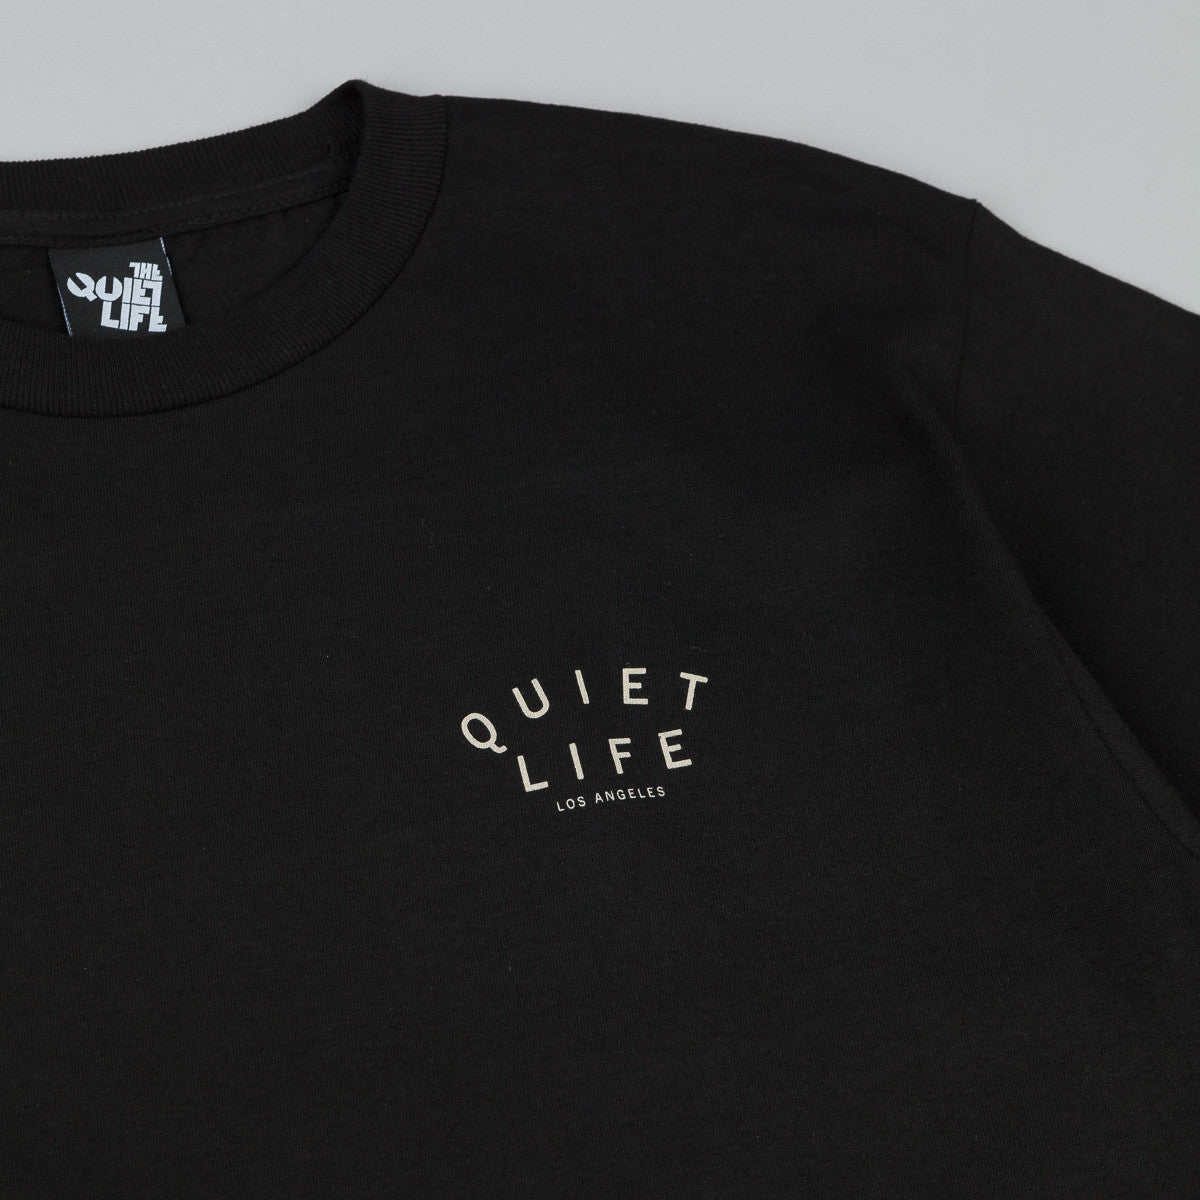 The Quiet Life Standard T-Shirt - Black